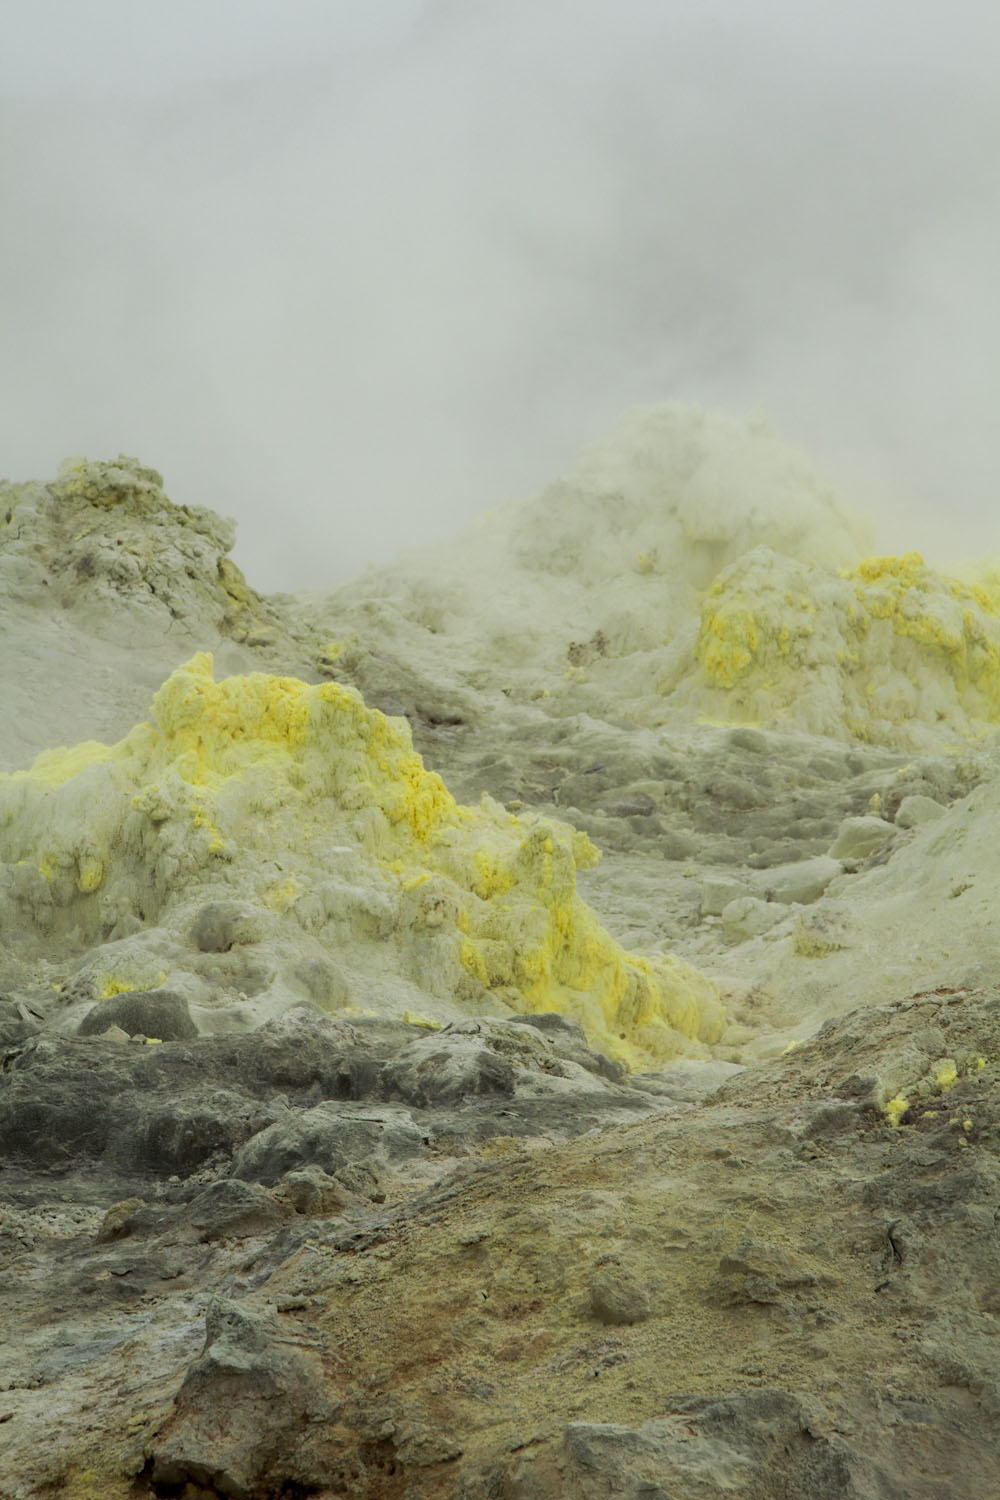 Iozan, a mountain in Hokkaido, constantly emits sulfur gas, creating these yellow formations.